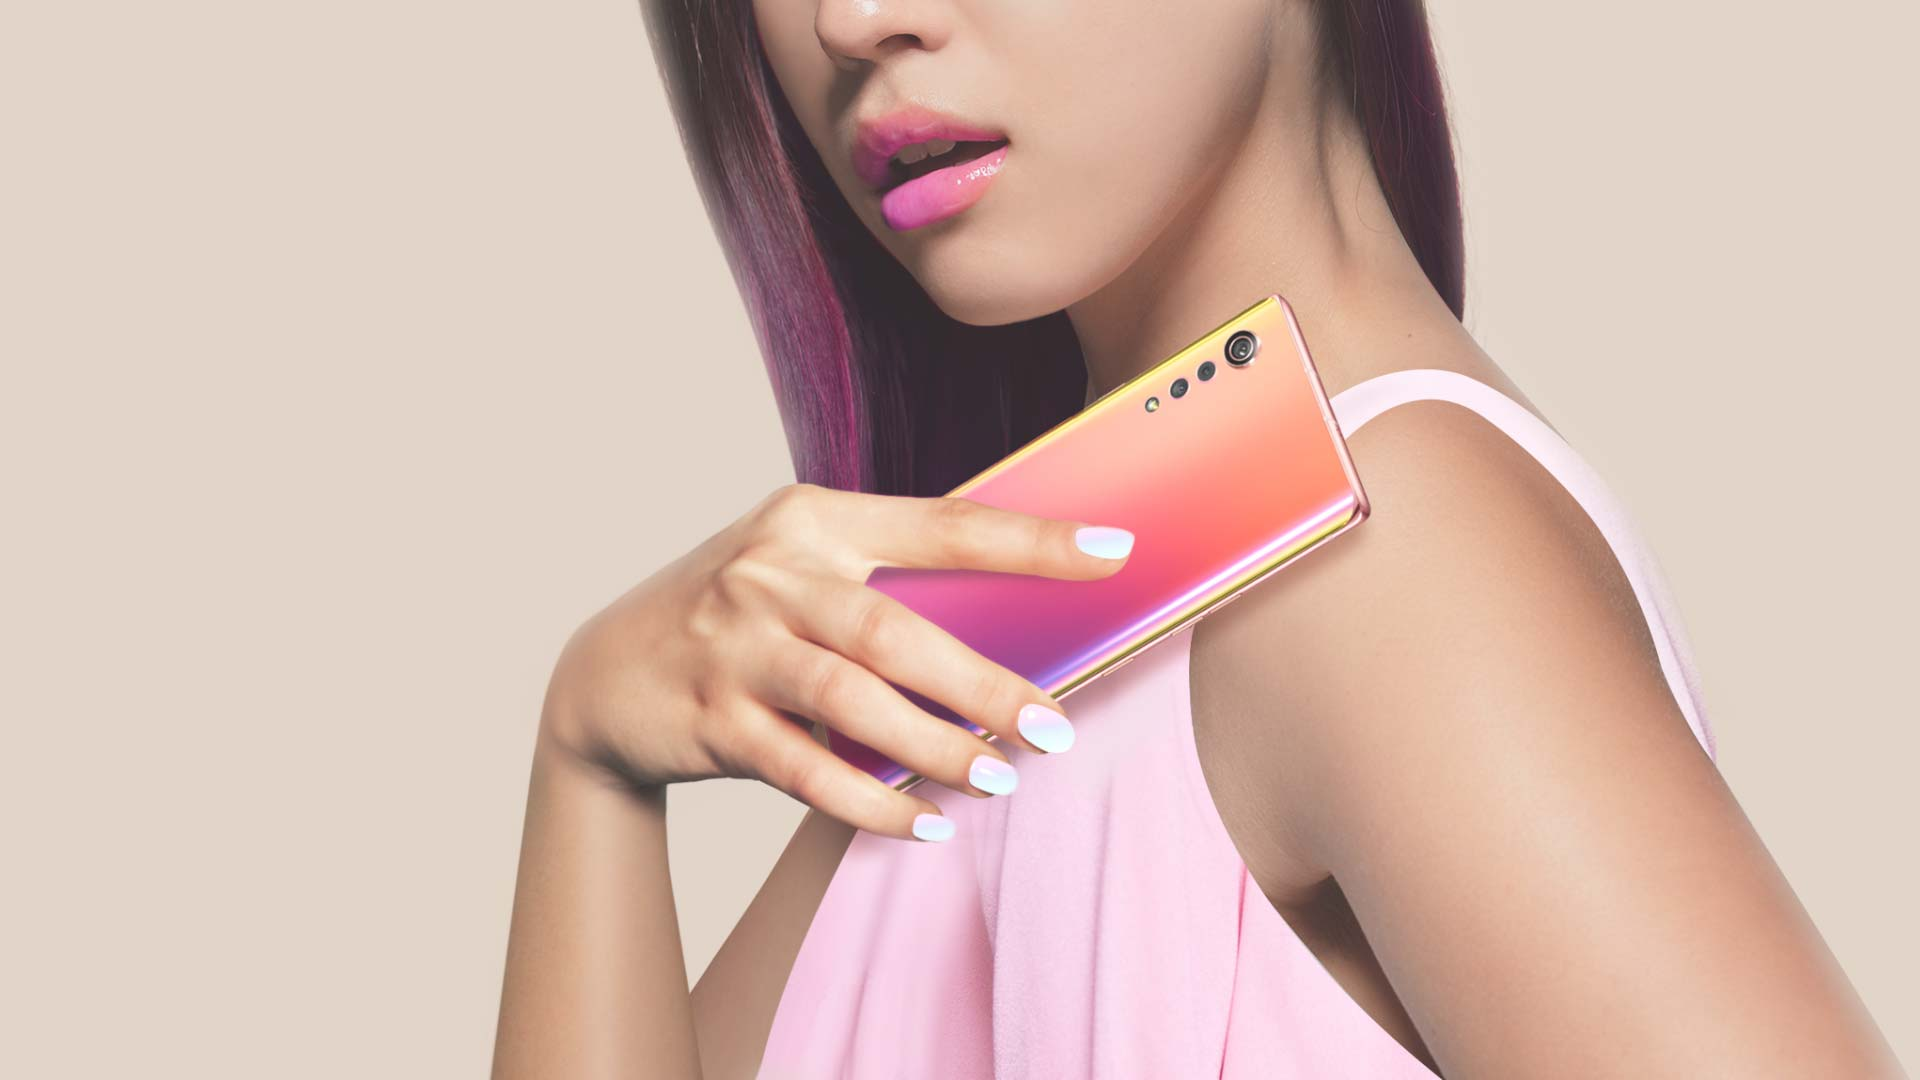 LG is allegedly sourcing display for its upcoming rollable smartphone from BOE